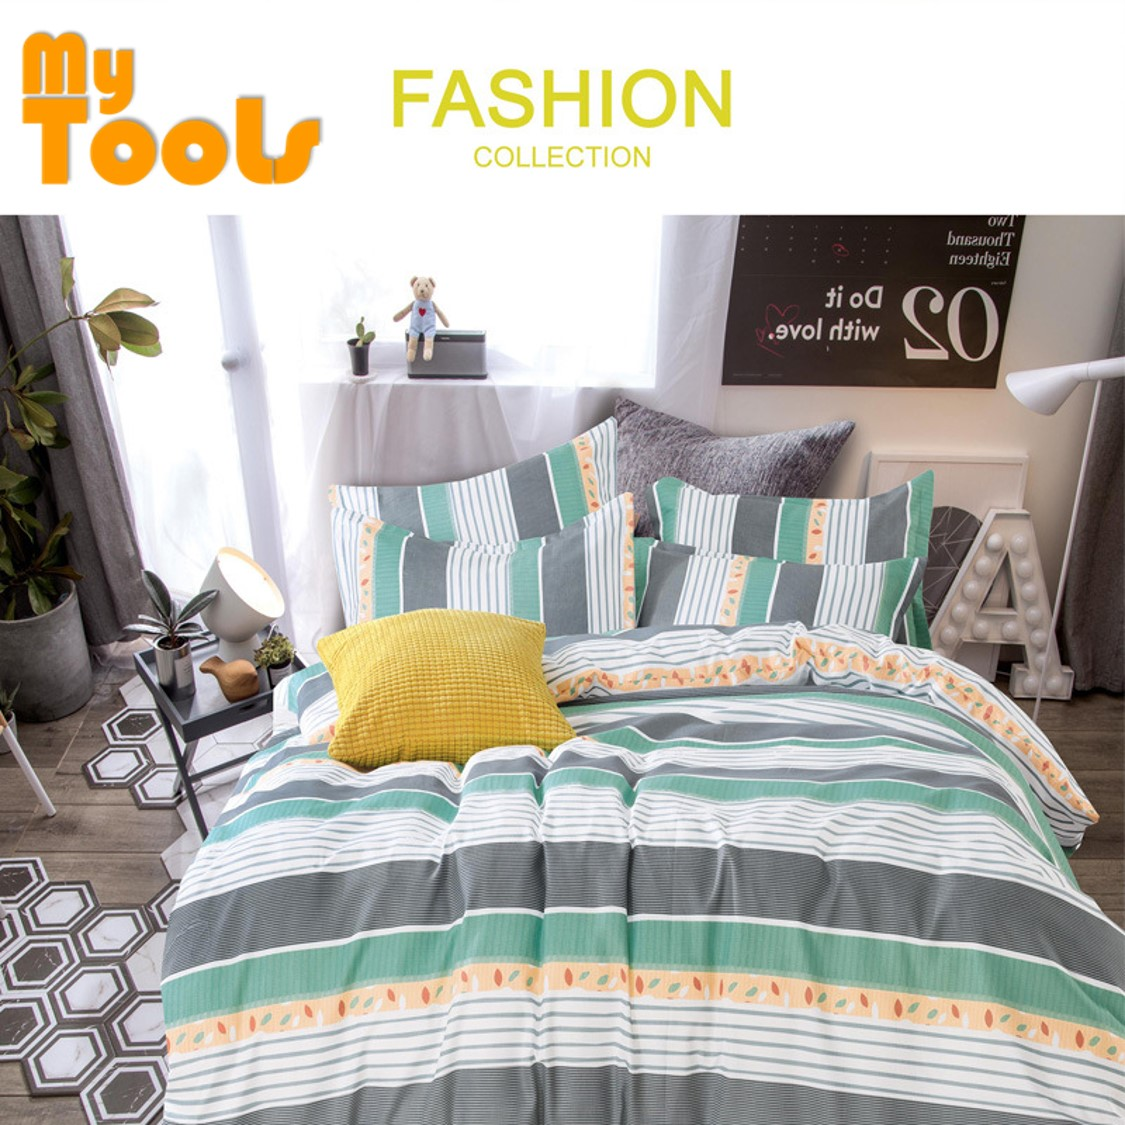 Mytools 4 In 1 100% Cotton Premium BedSheet Queen Size / King / Single Fitted Bedsheet / Cadar c/w Pillow Case & Bolster ( 20 Pattern ++)